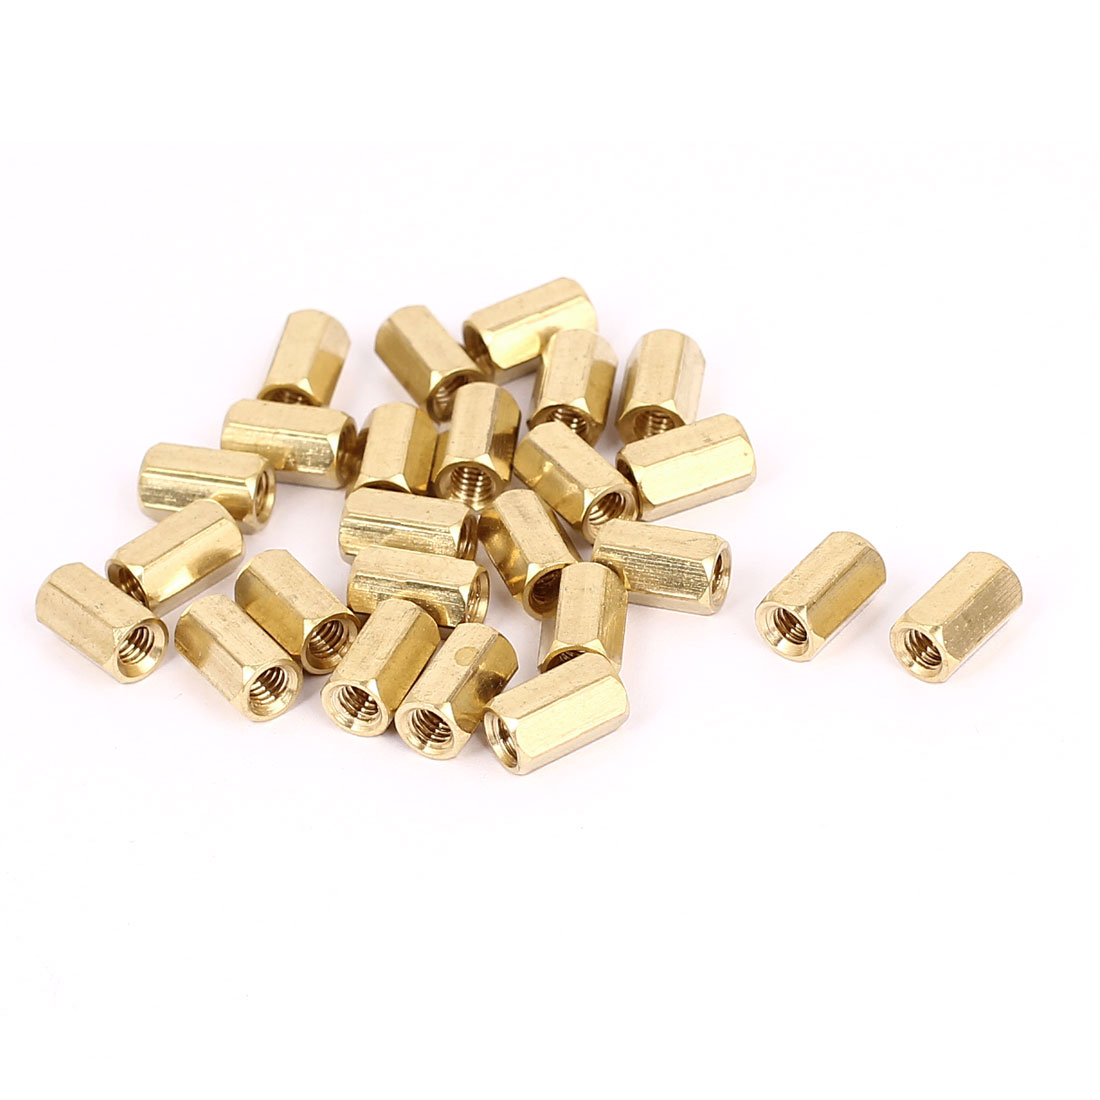 M4 x 10mm Female Thread Brass Hex Standoff Pillar Rod Spacer Coupler Nut 25pcs